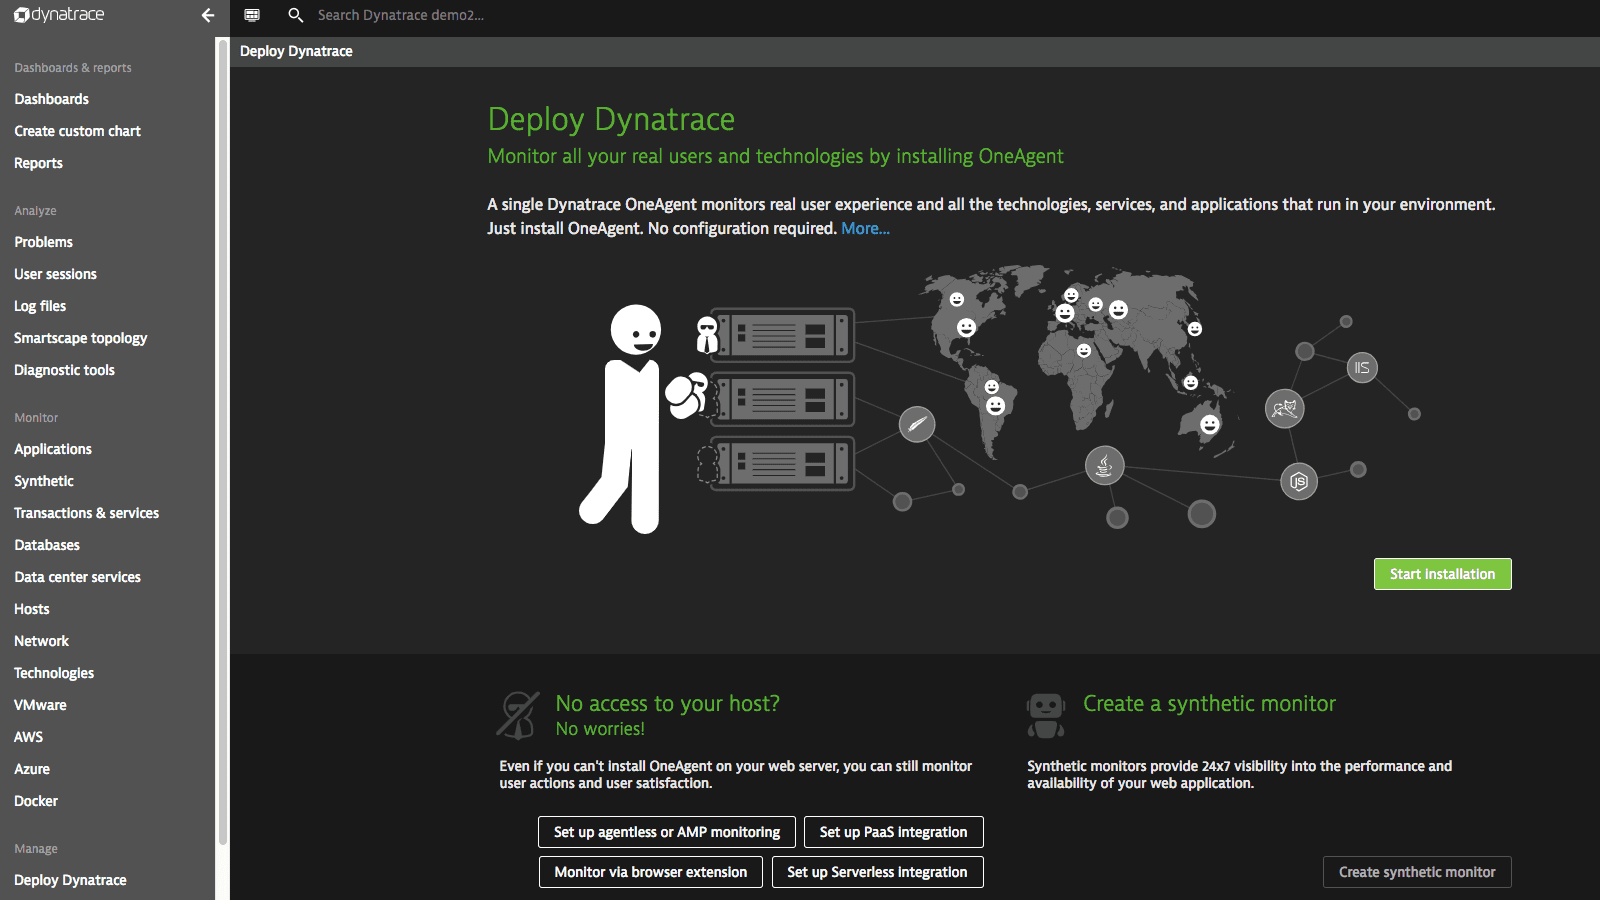 Dynatrace deployment screen